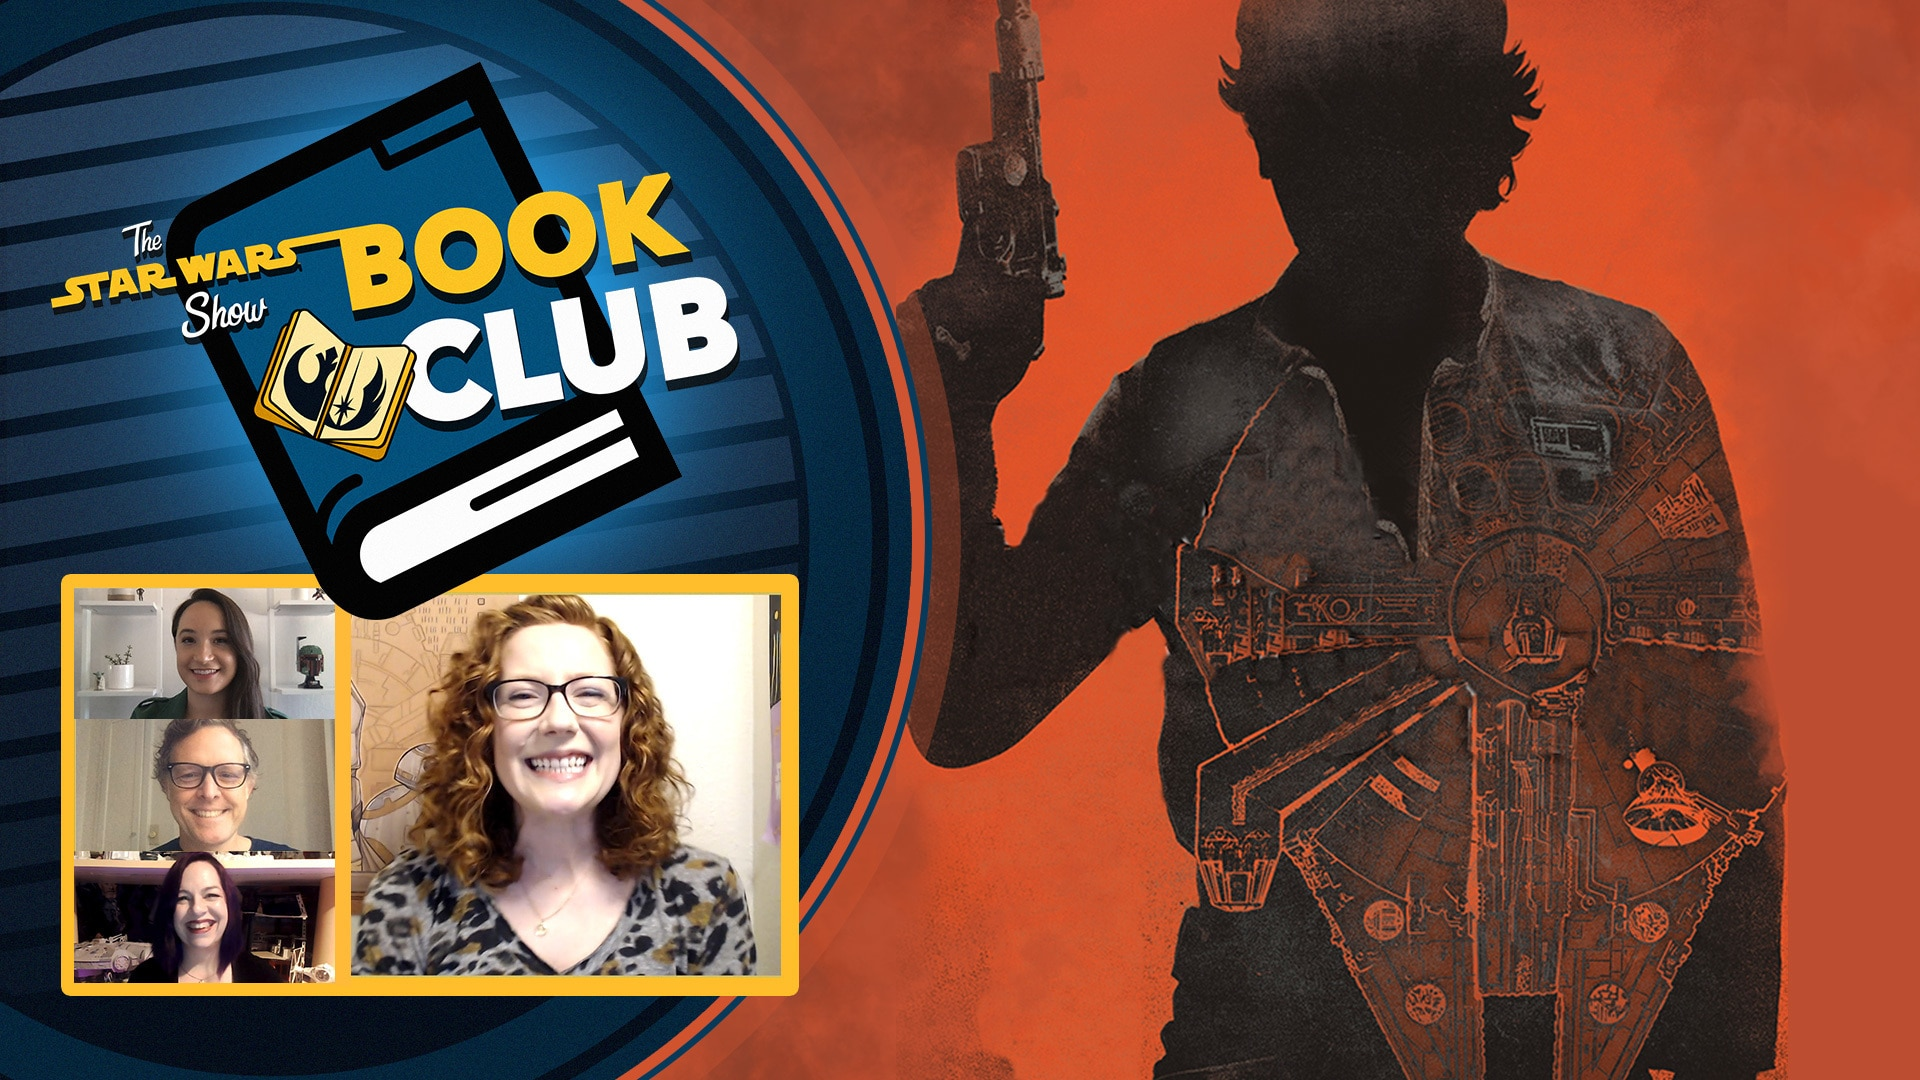 Star Wars: Last Shot | The Star Wars Show Book Club